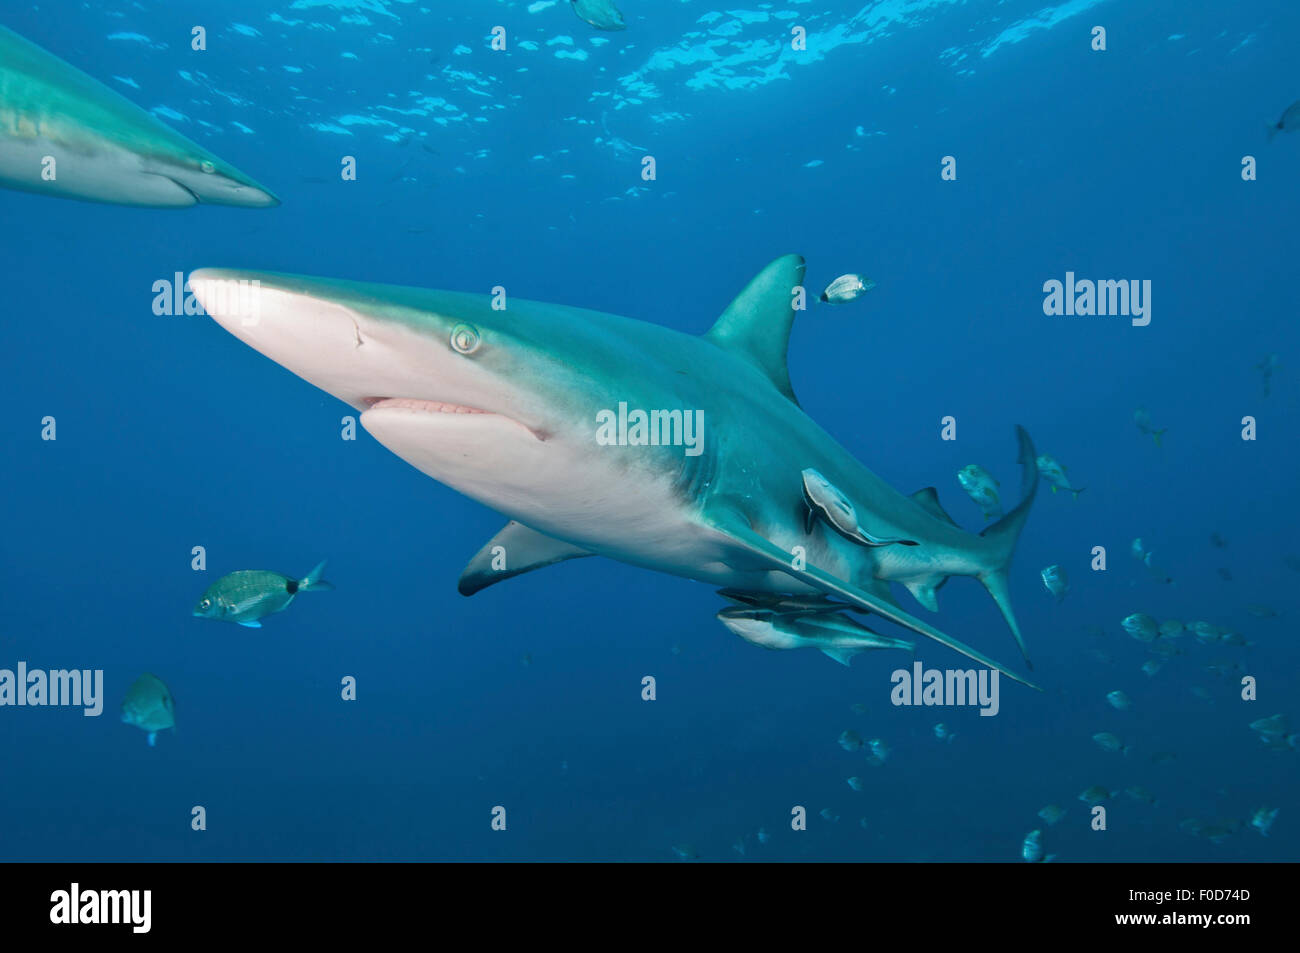 An oceanic blacktip shark swims by with remora in tow, Aliwal Shoal, Umkomaas, KwaZulu-Natal, South Africa. Stock Photo